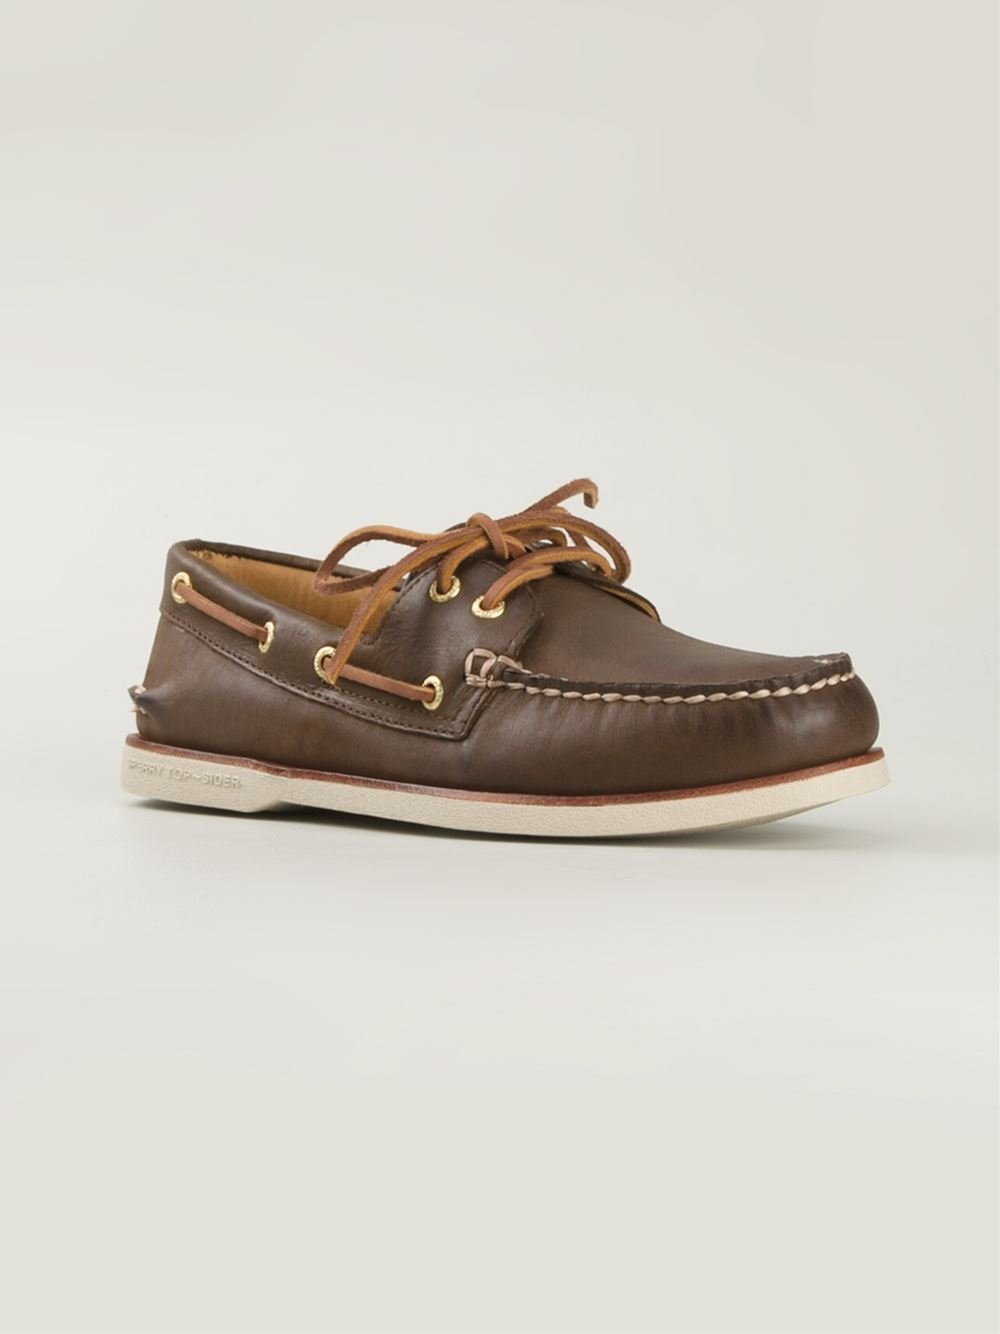 Sperry Top Sider Gold Cup Shoes